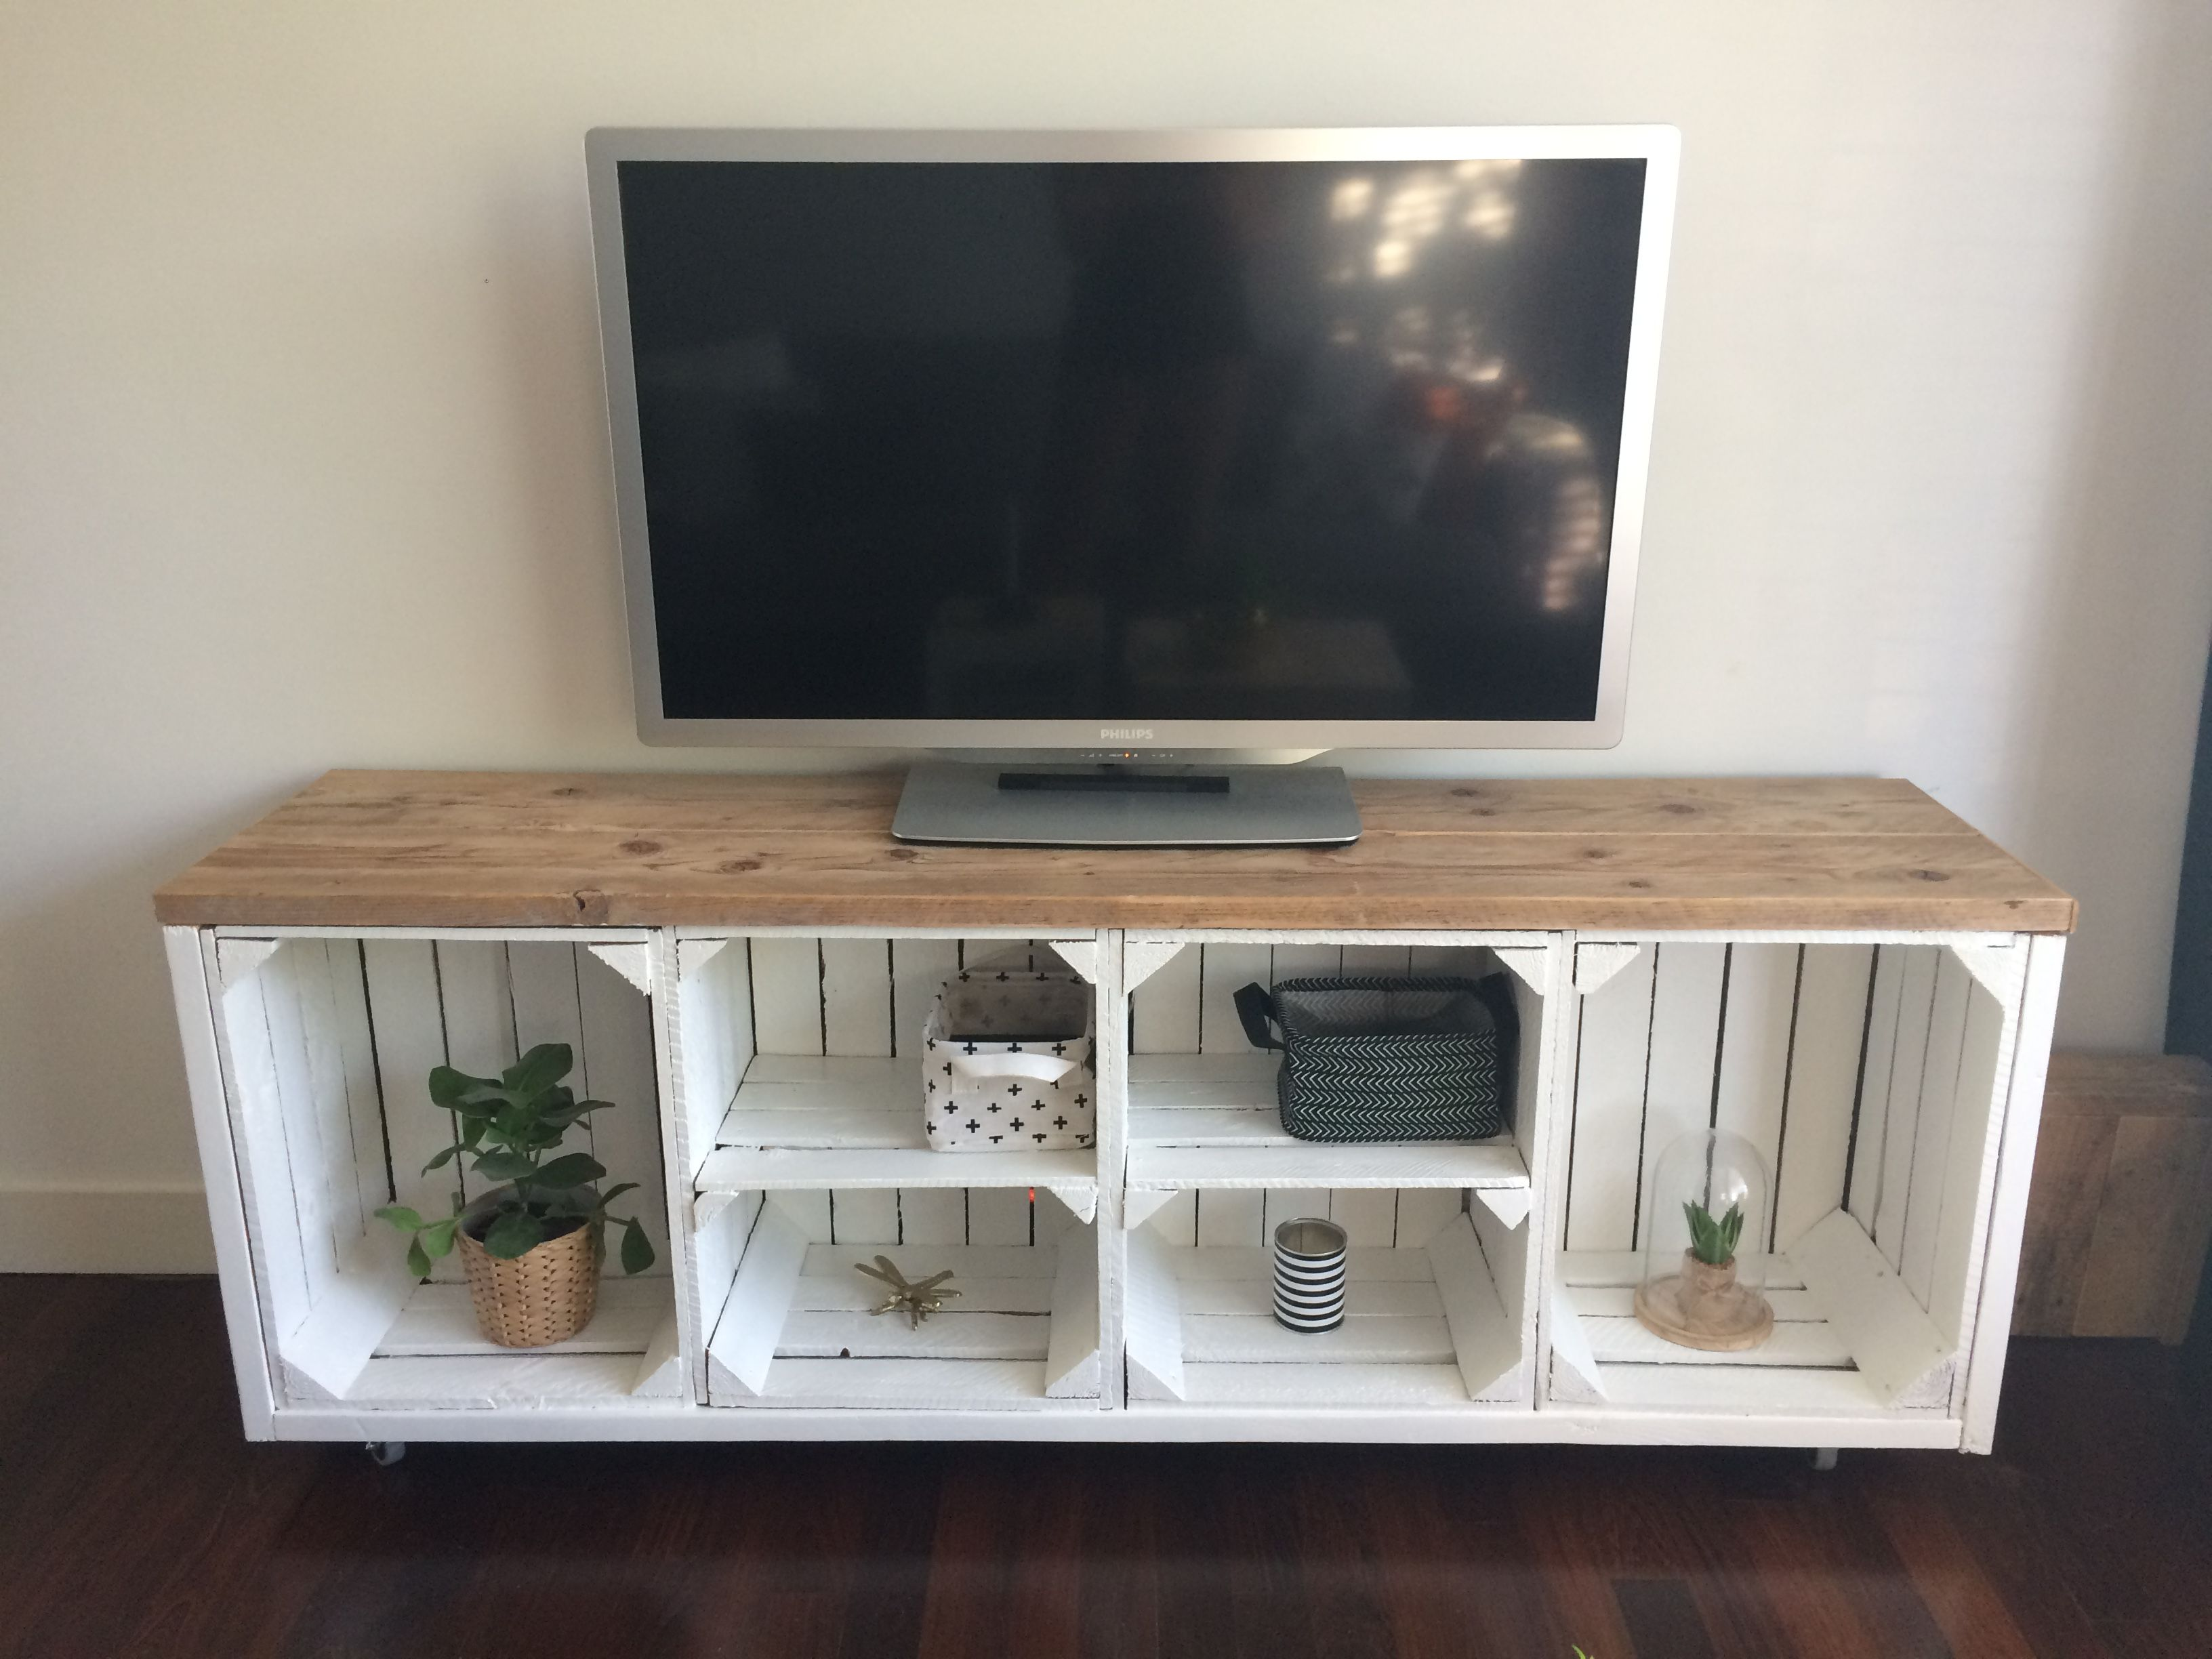 Beroemd tv meubel kist | Made by us in 2019 - Diy tv, Home Decor en Diy tv @DJ61